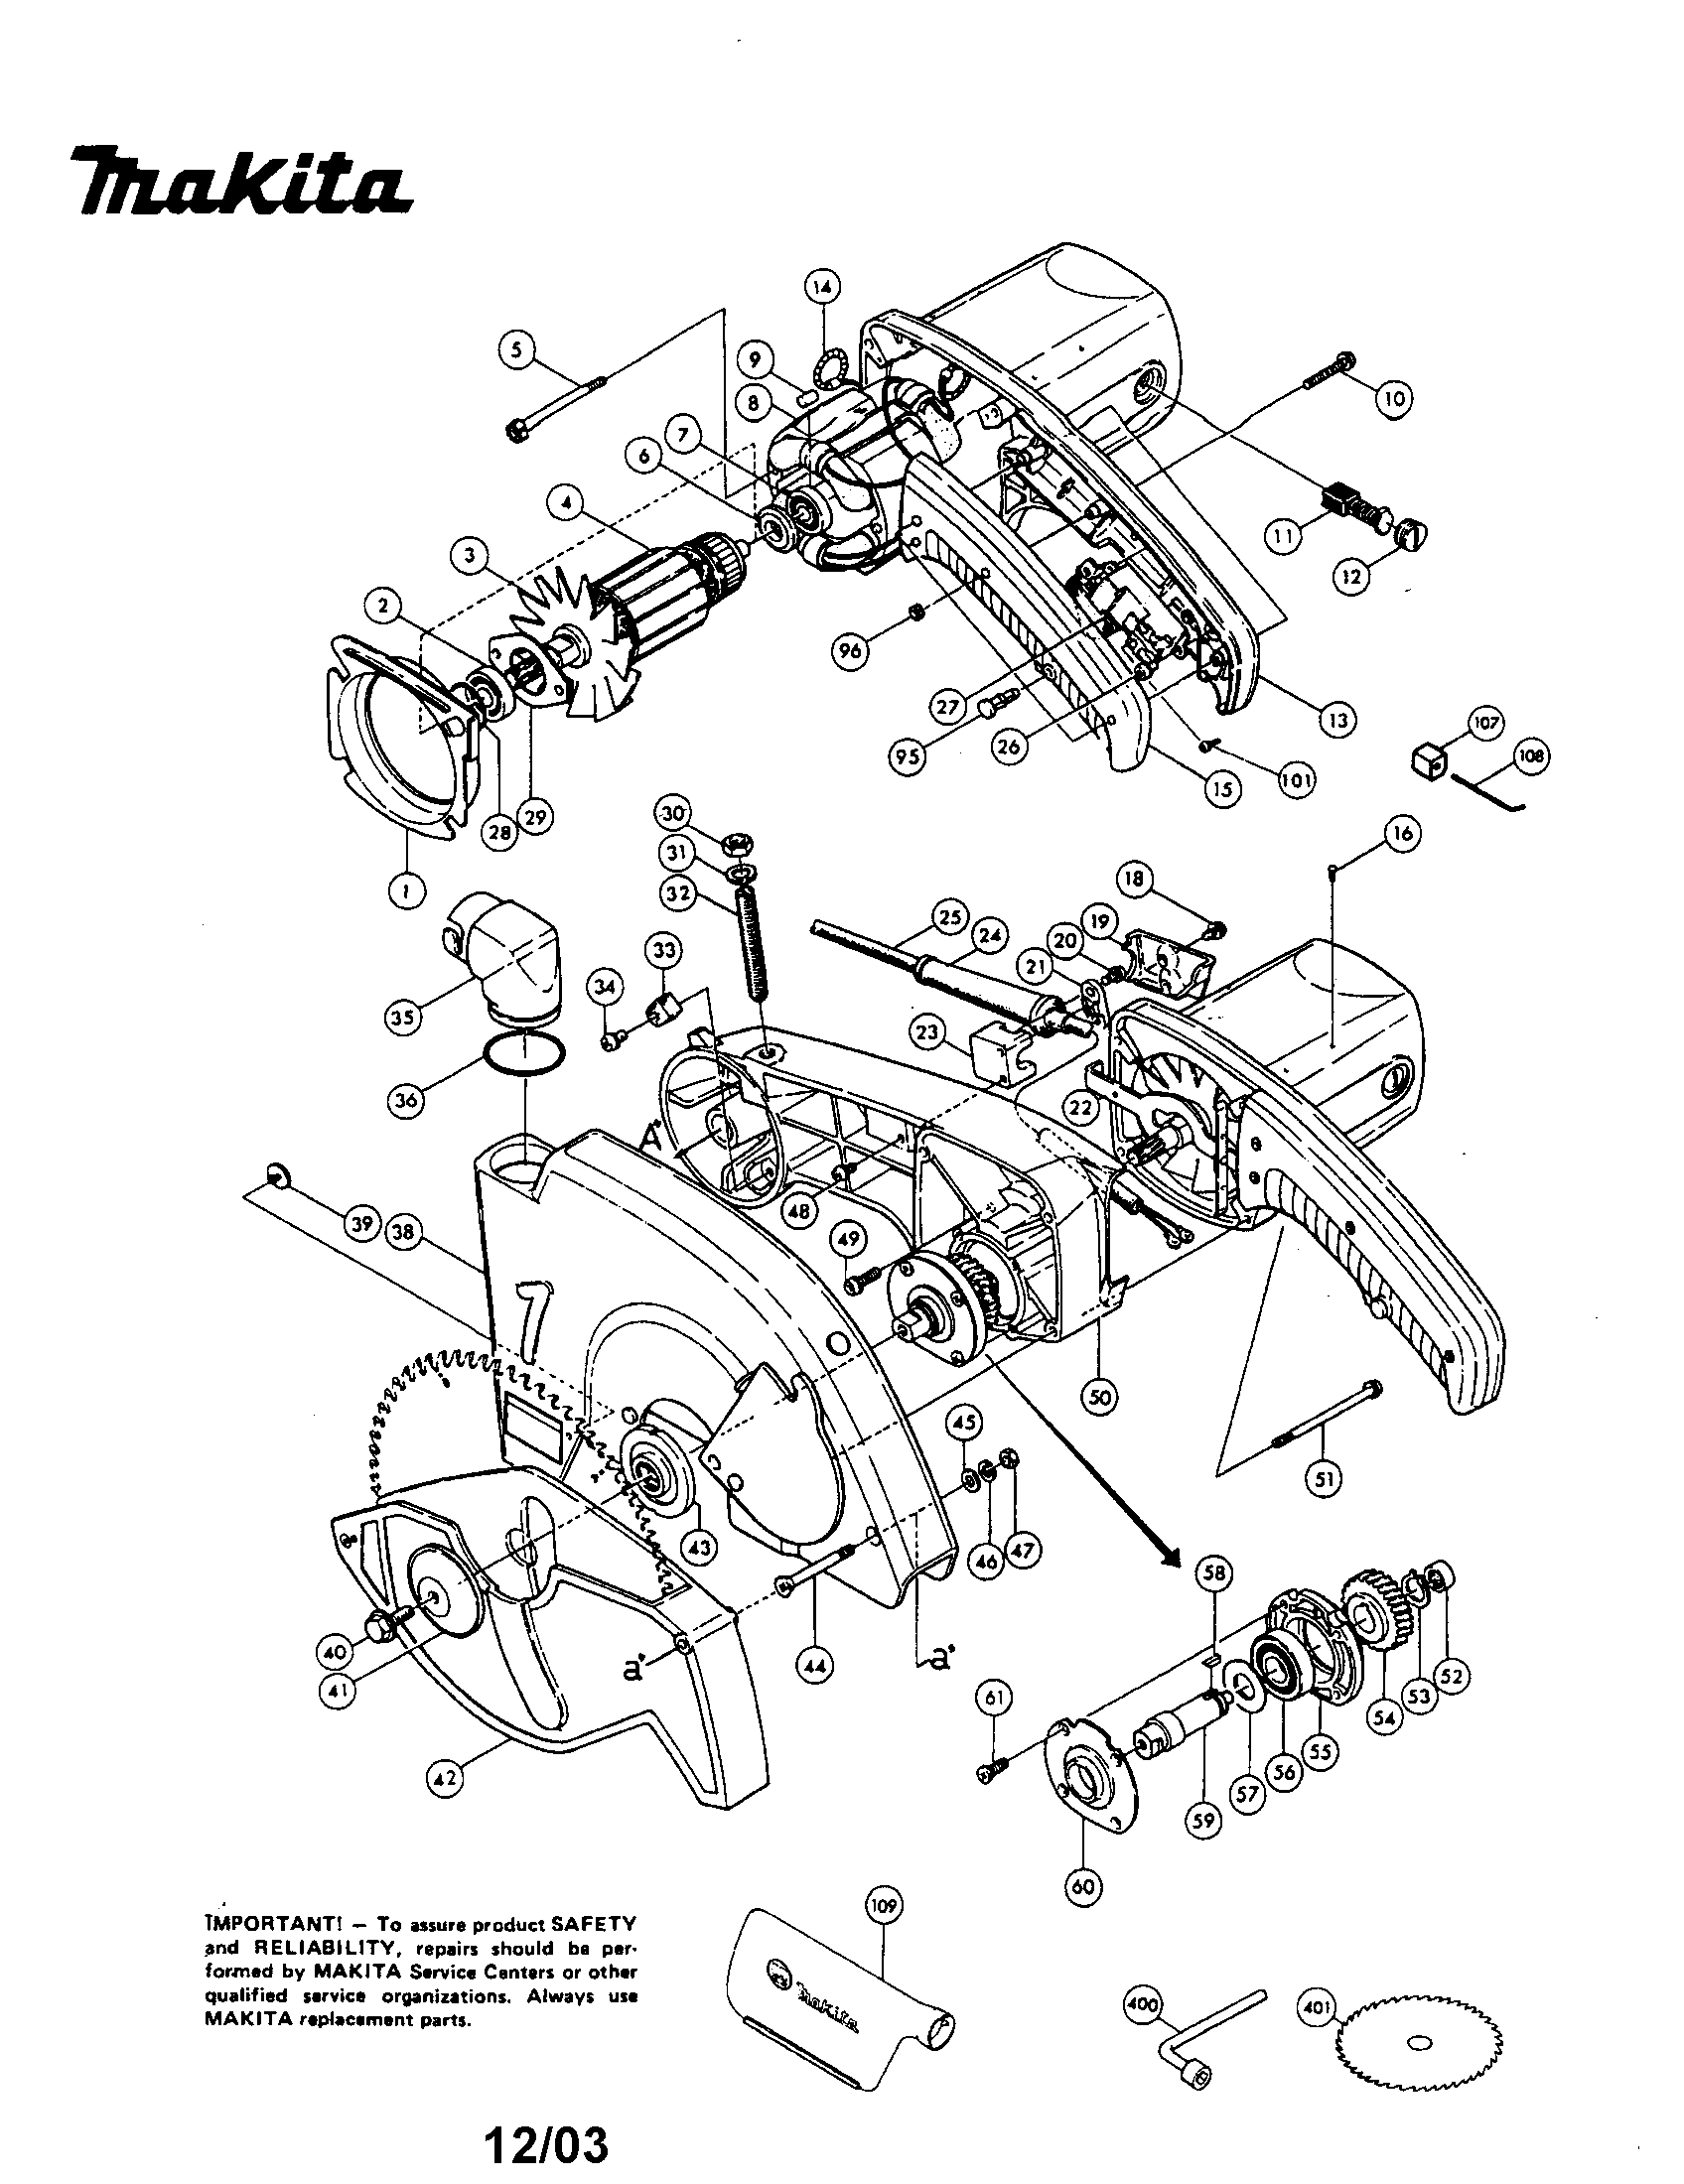 [DIAGRAM in Pictures Database] Makita Miter Saw Switch